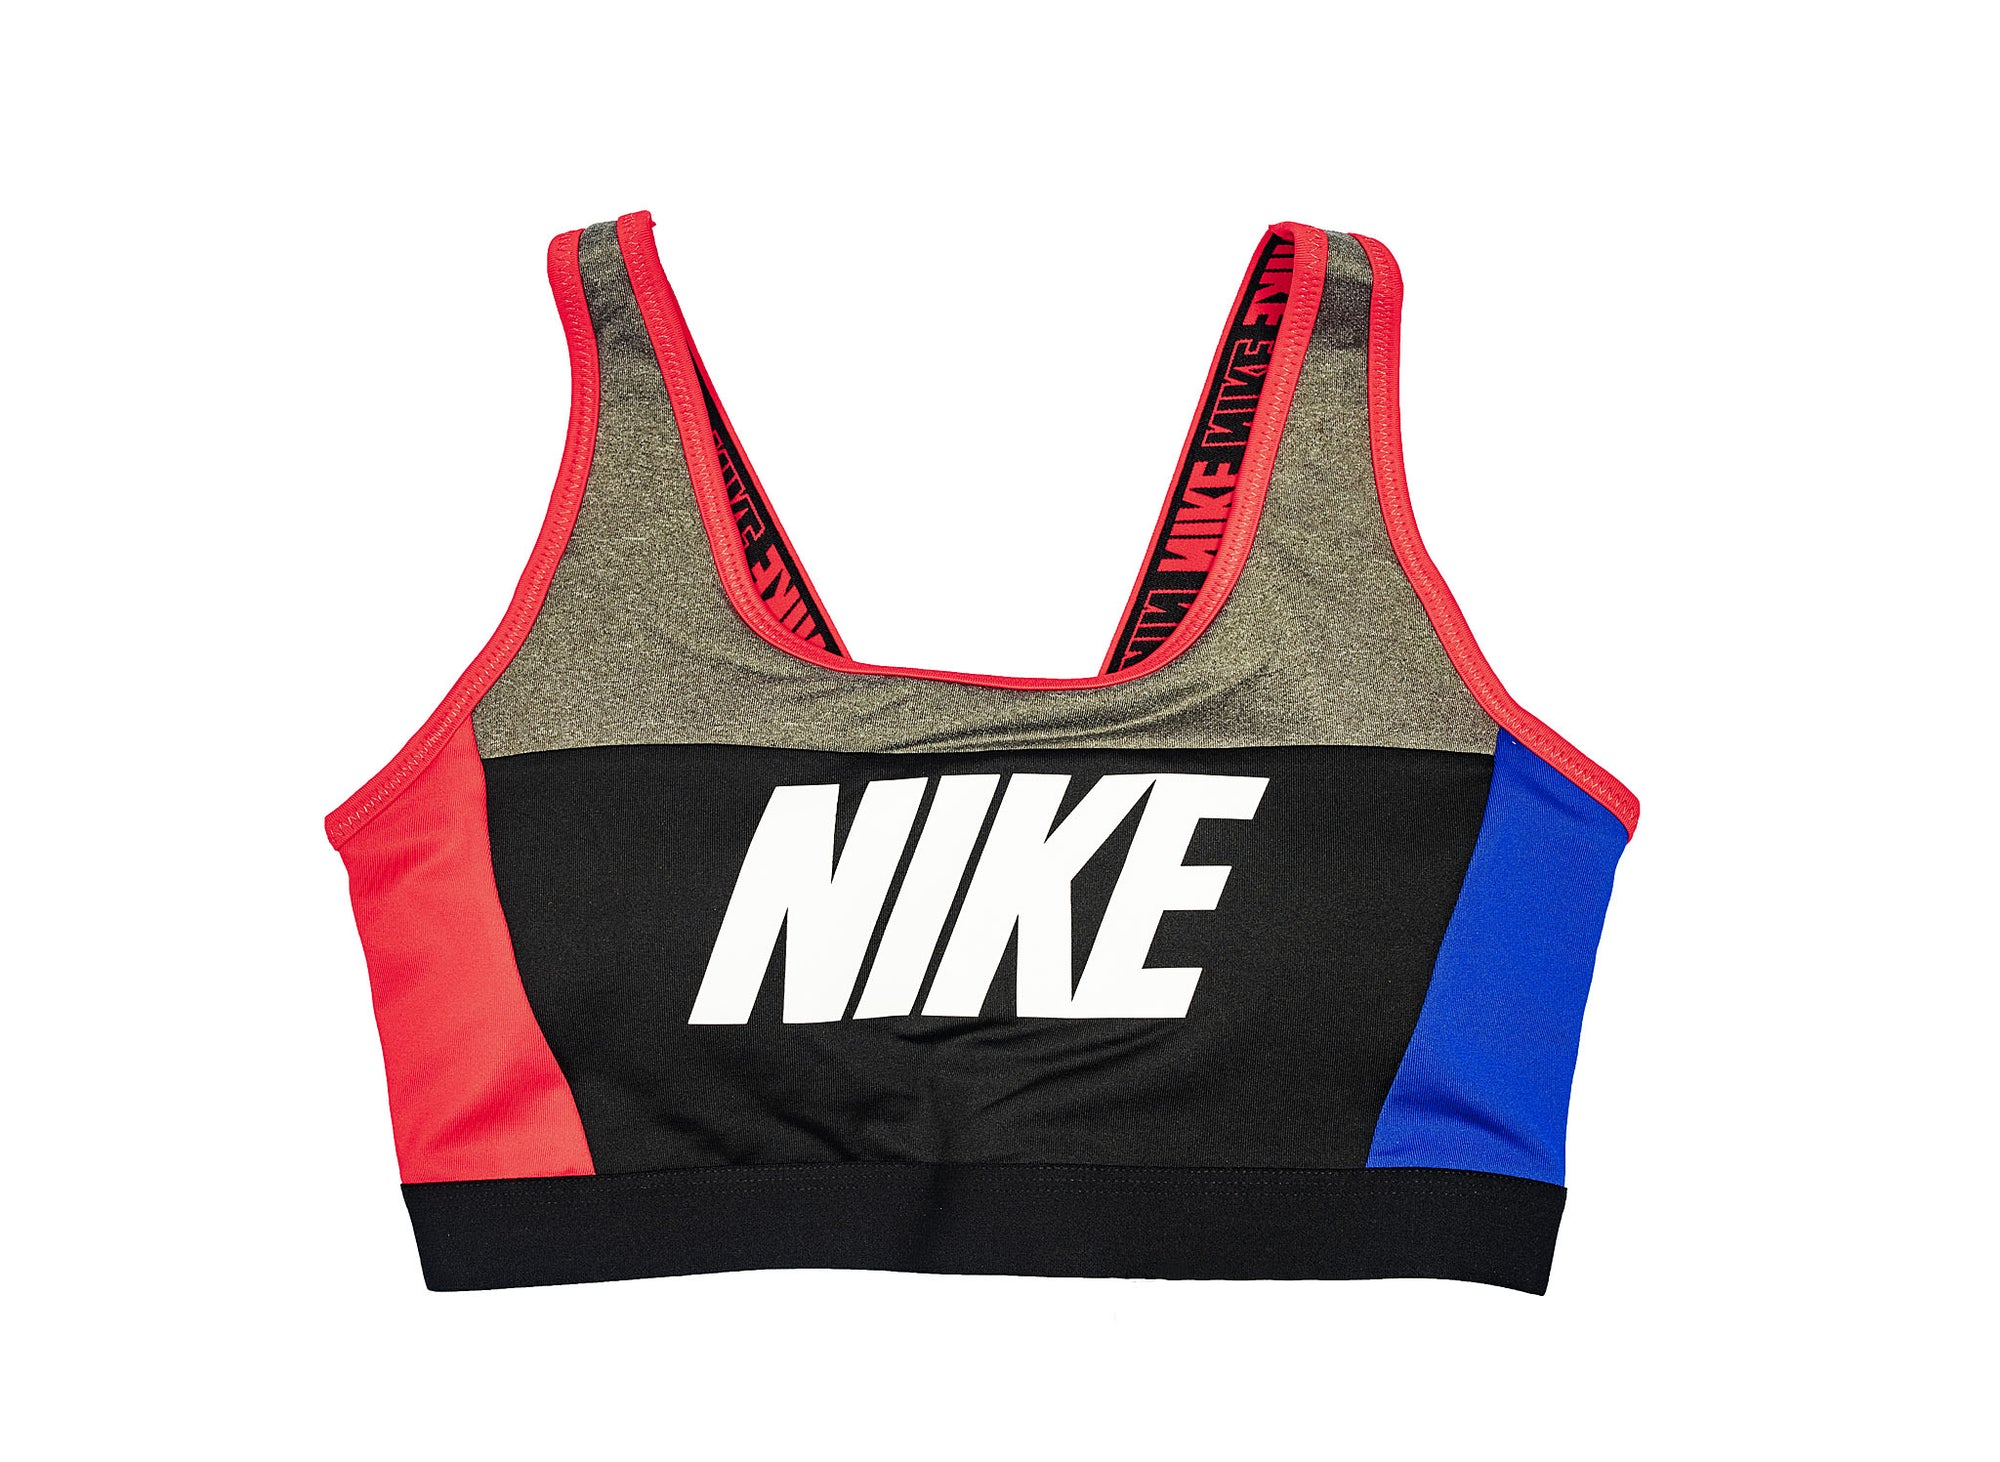 NIKE SPORT DISTRICT CLASSIC TOP